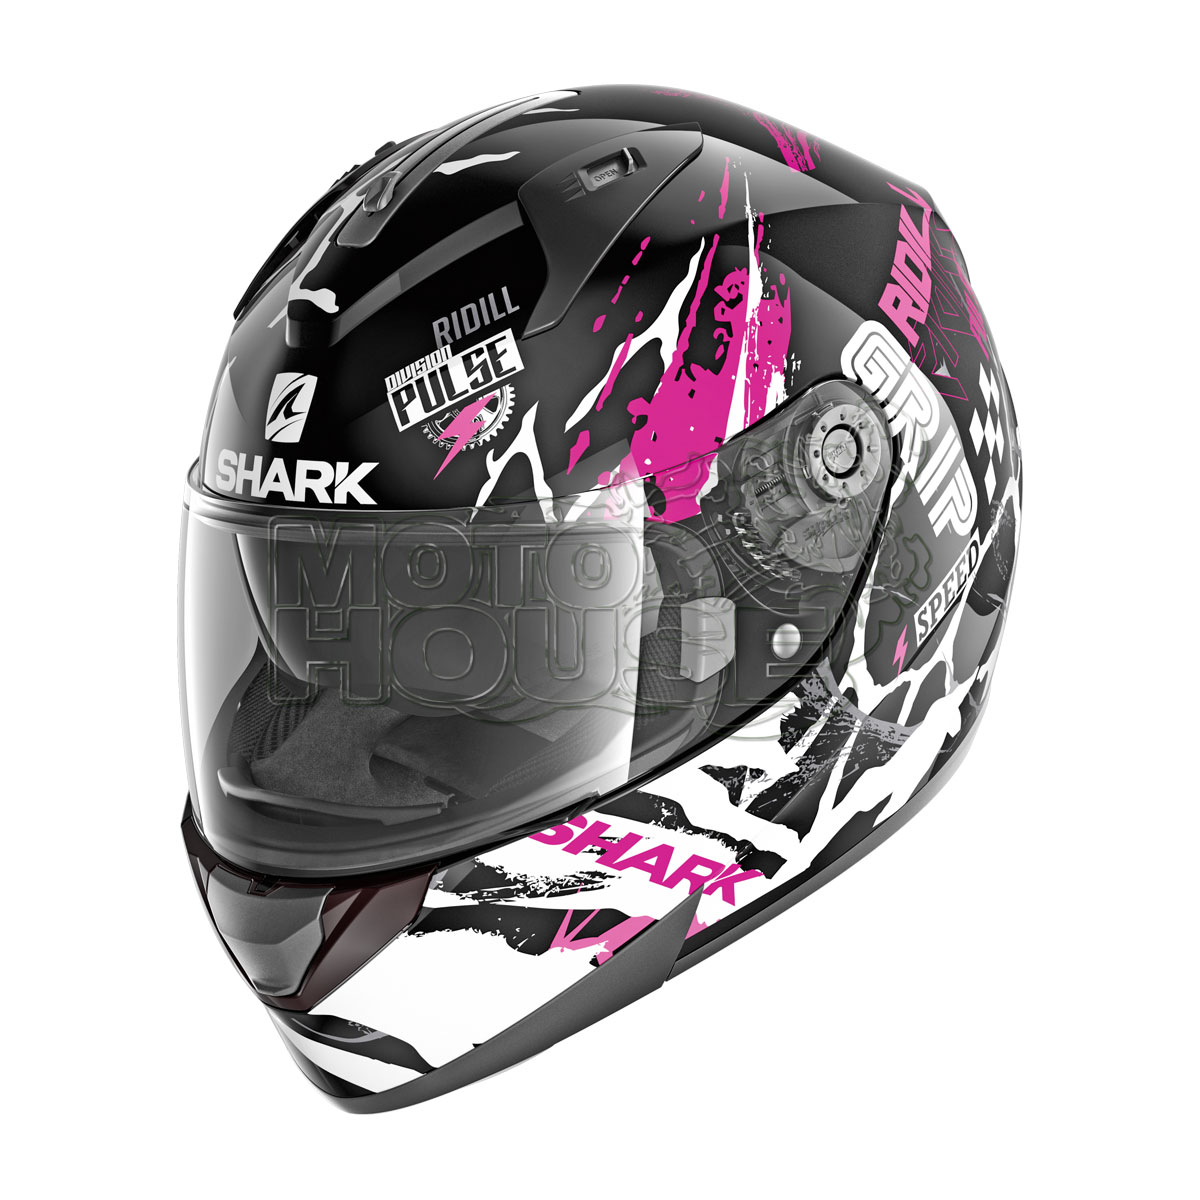 Casco Integral Shark Ridill Drift Negro/rosa